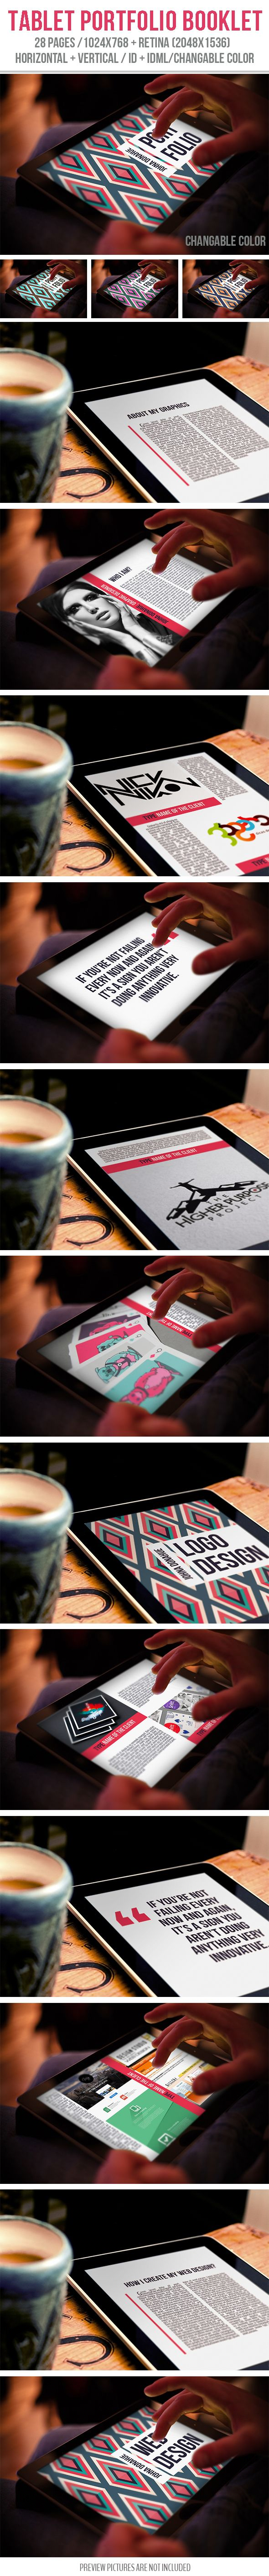 Tablet Portfolio Booklet by crew55design, via Behance